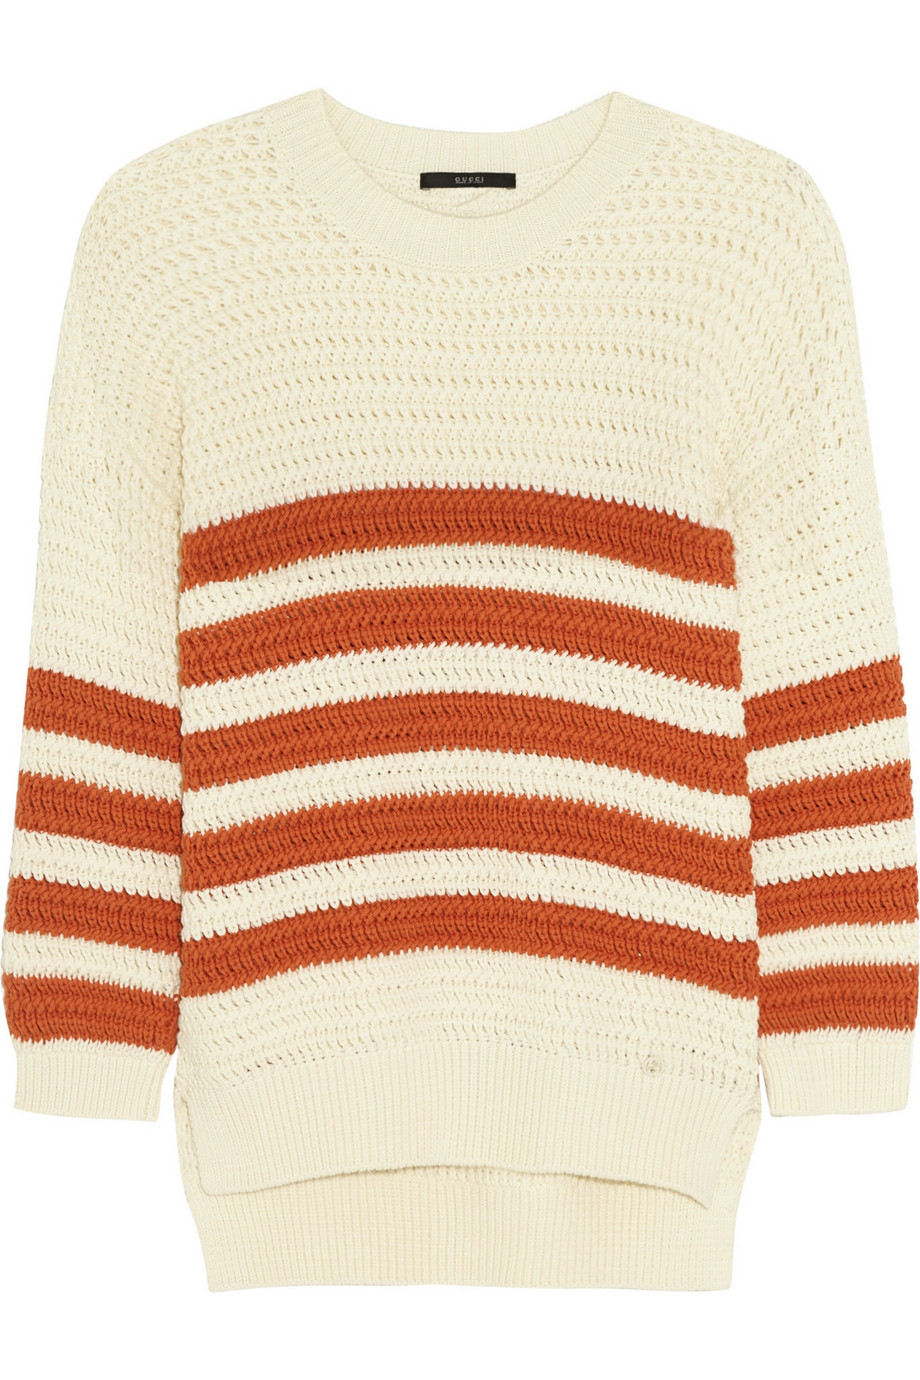 Gucci Striped Cotton-Blend Sweater, Size: L